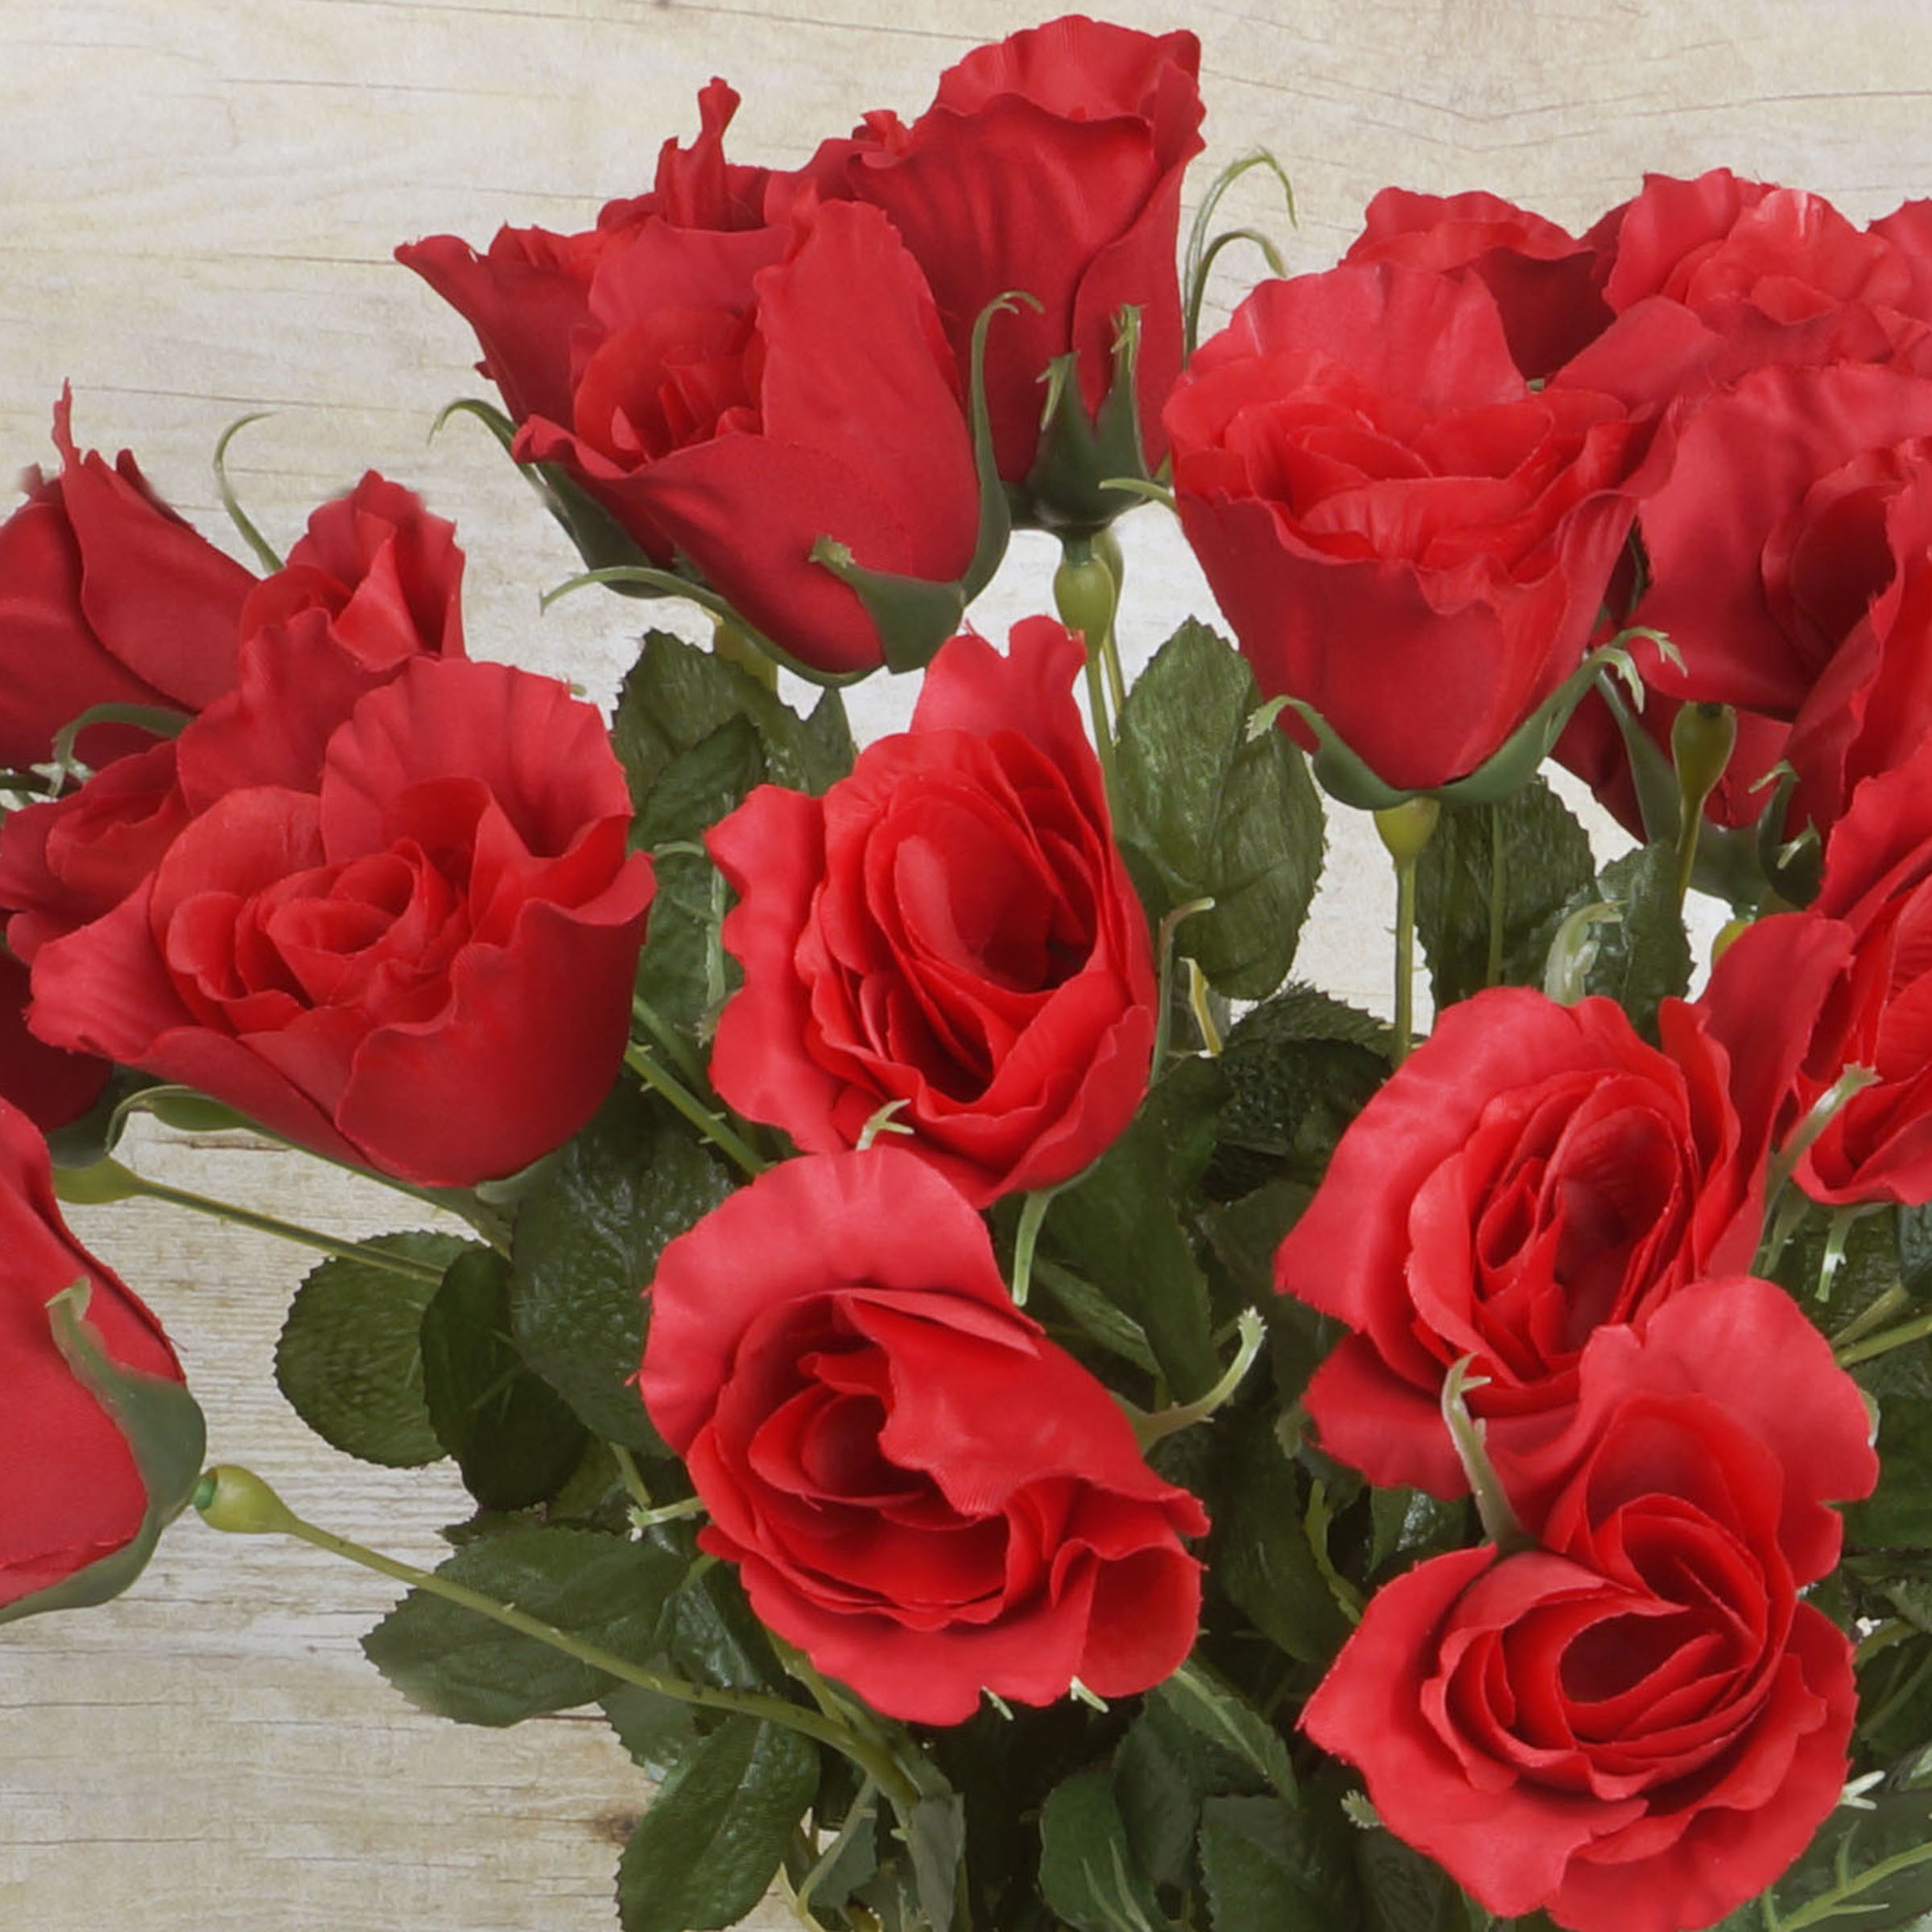 48 Red LONG SINGLE STEM ROSES BUNDLE Silk Wedding Flowers Bouquets ...